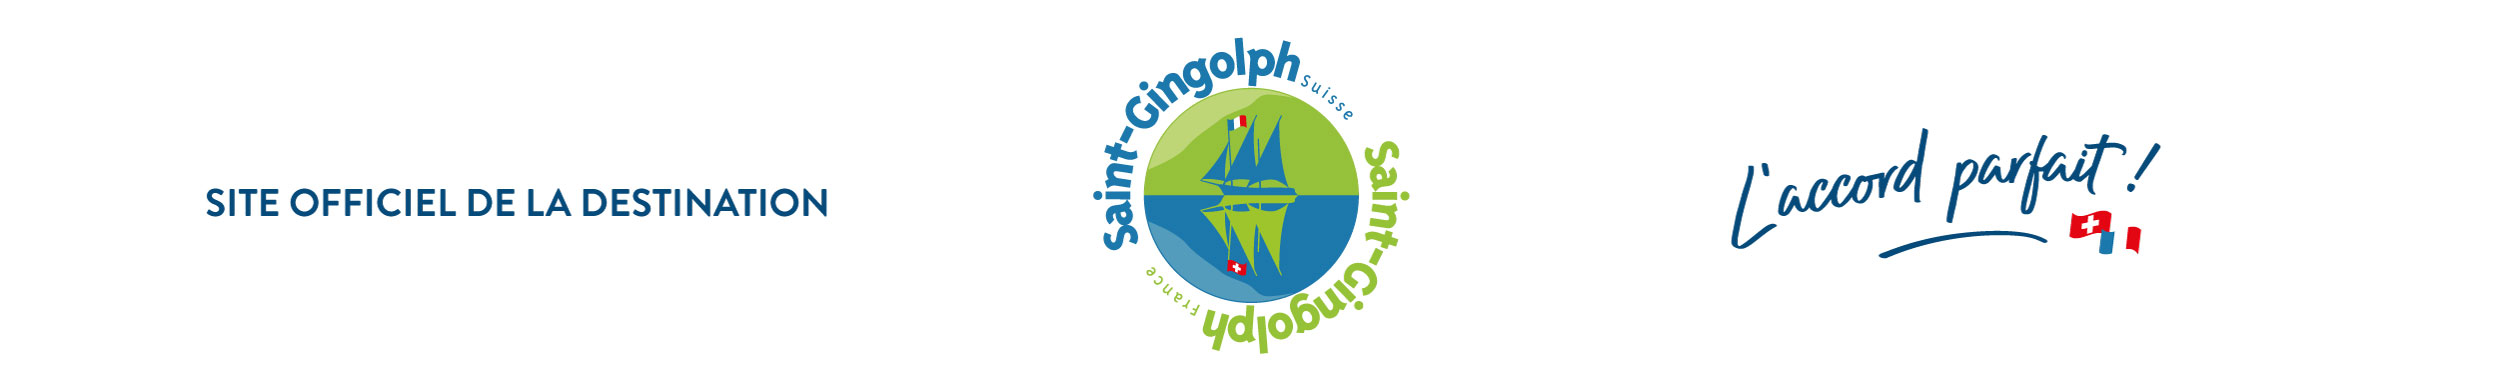 Saint-Gingolph, destination franco-suisse – Tourisme Loisirs Culture Logo